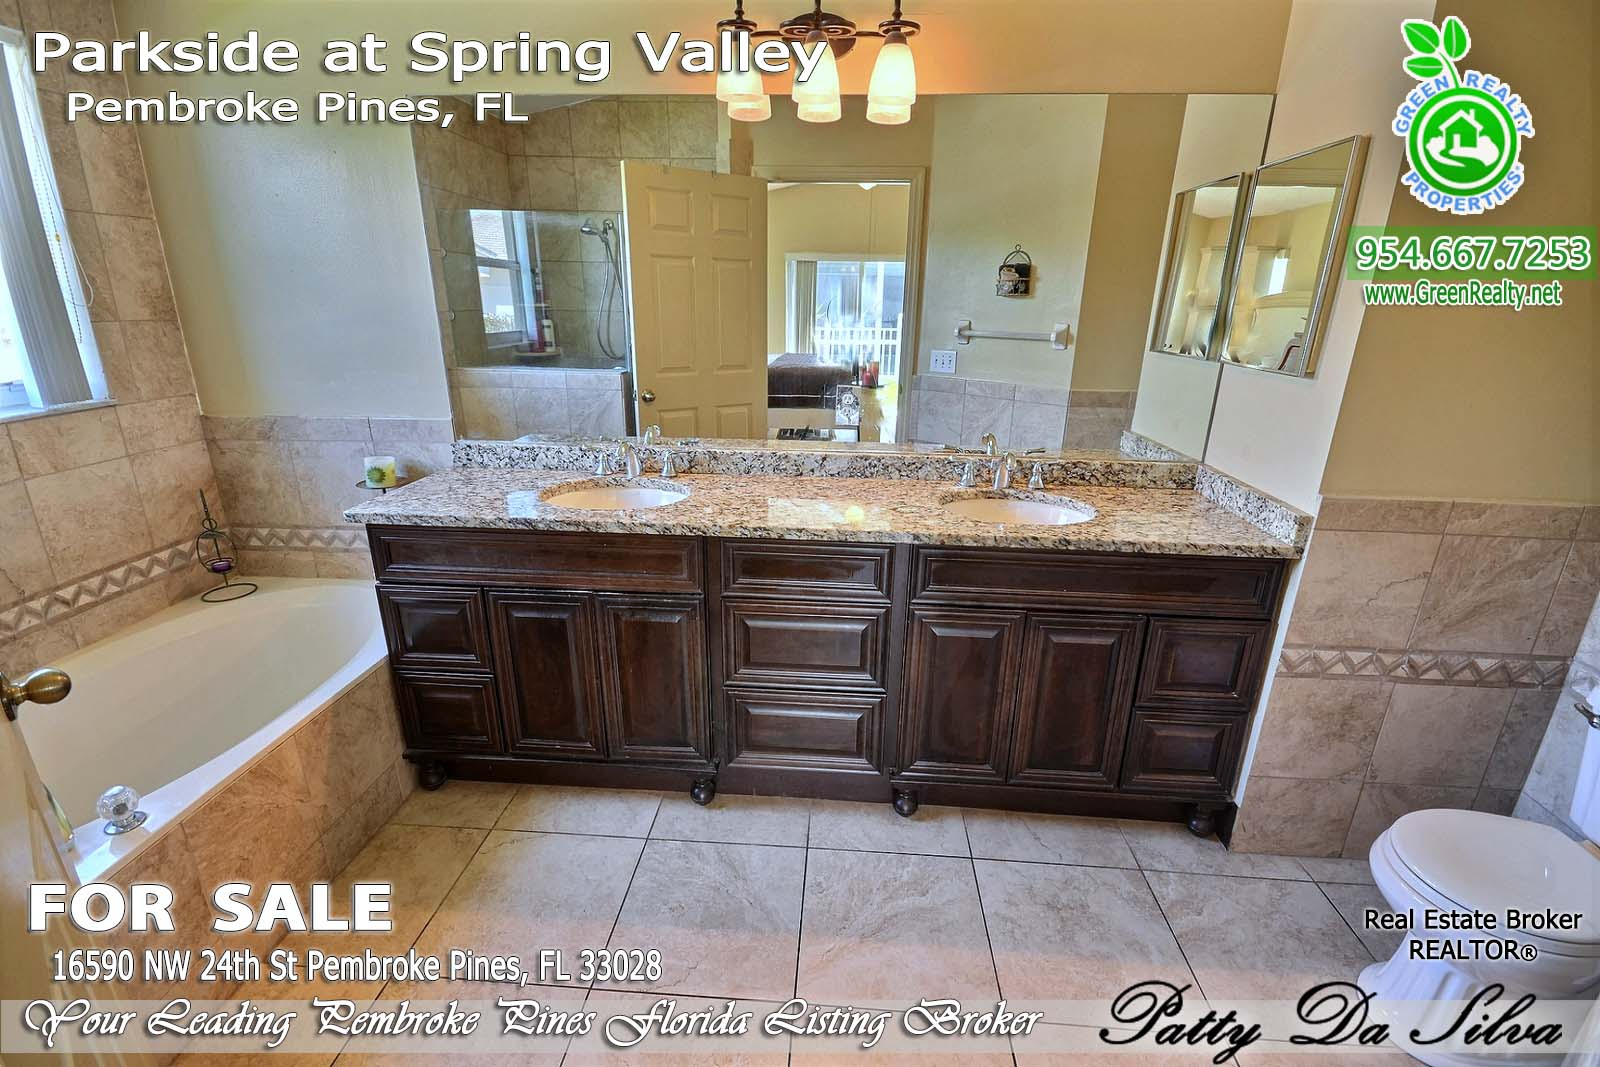 Parkside at Spring Valley Homes For Sale - Pembroke Pines Florida (21)